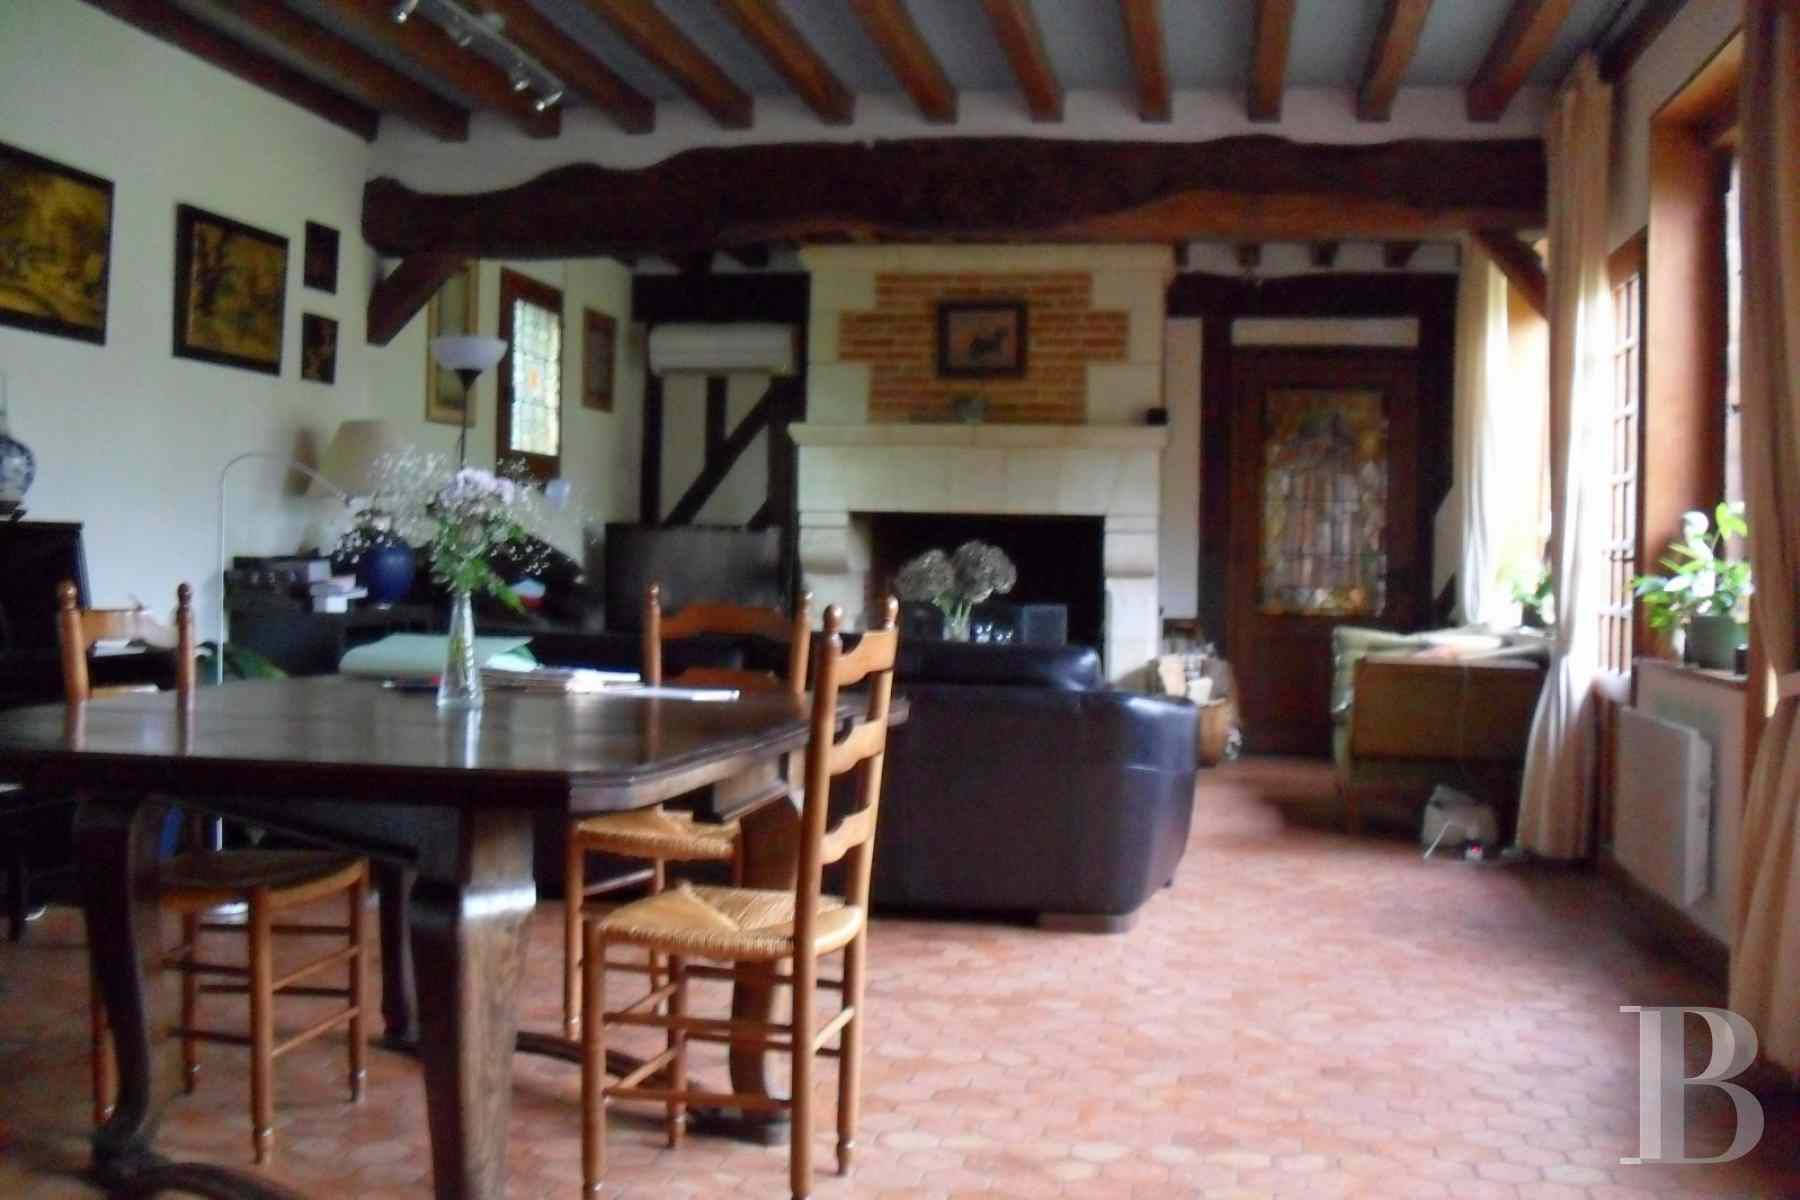 property for sale France upper normandy listed village - 8 zoom